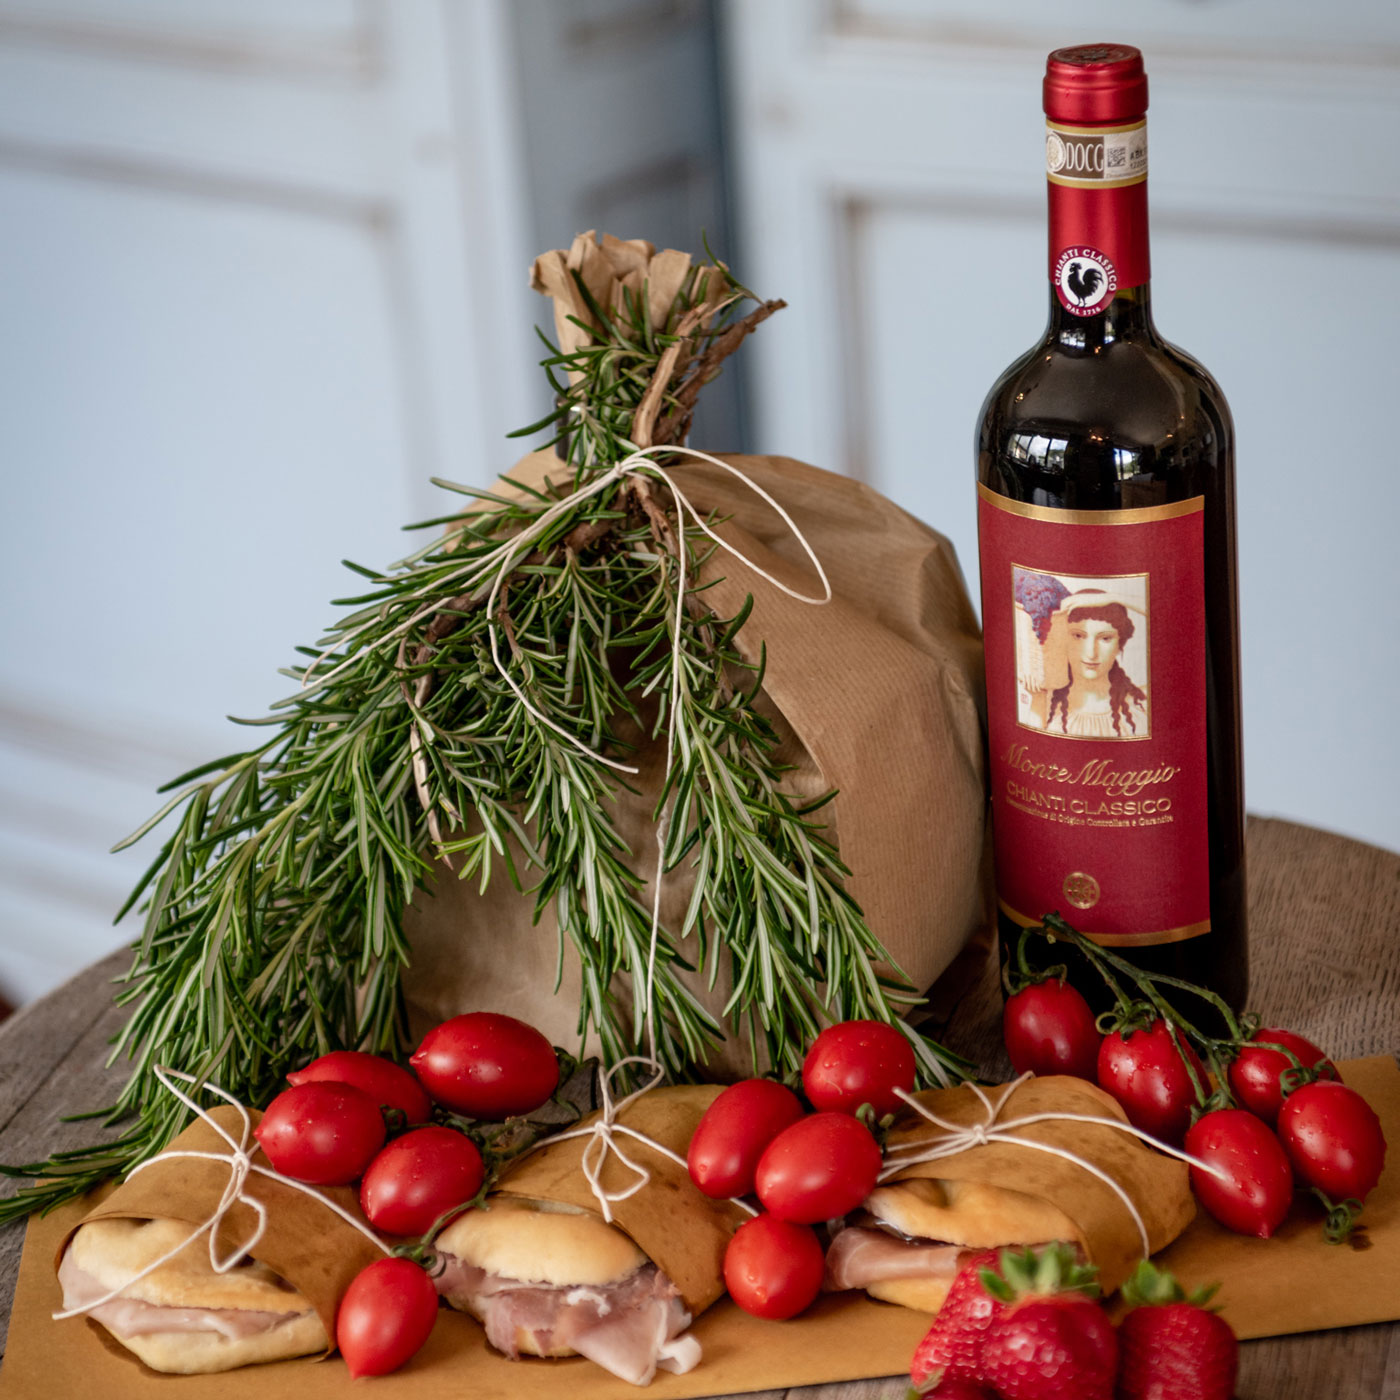 Try out a cooking class, light lunch, or wine tasting of Chianti Classico red